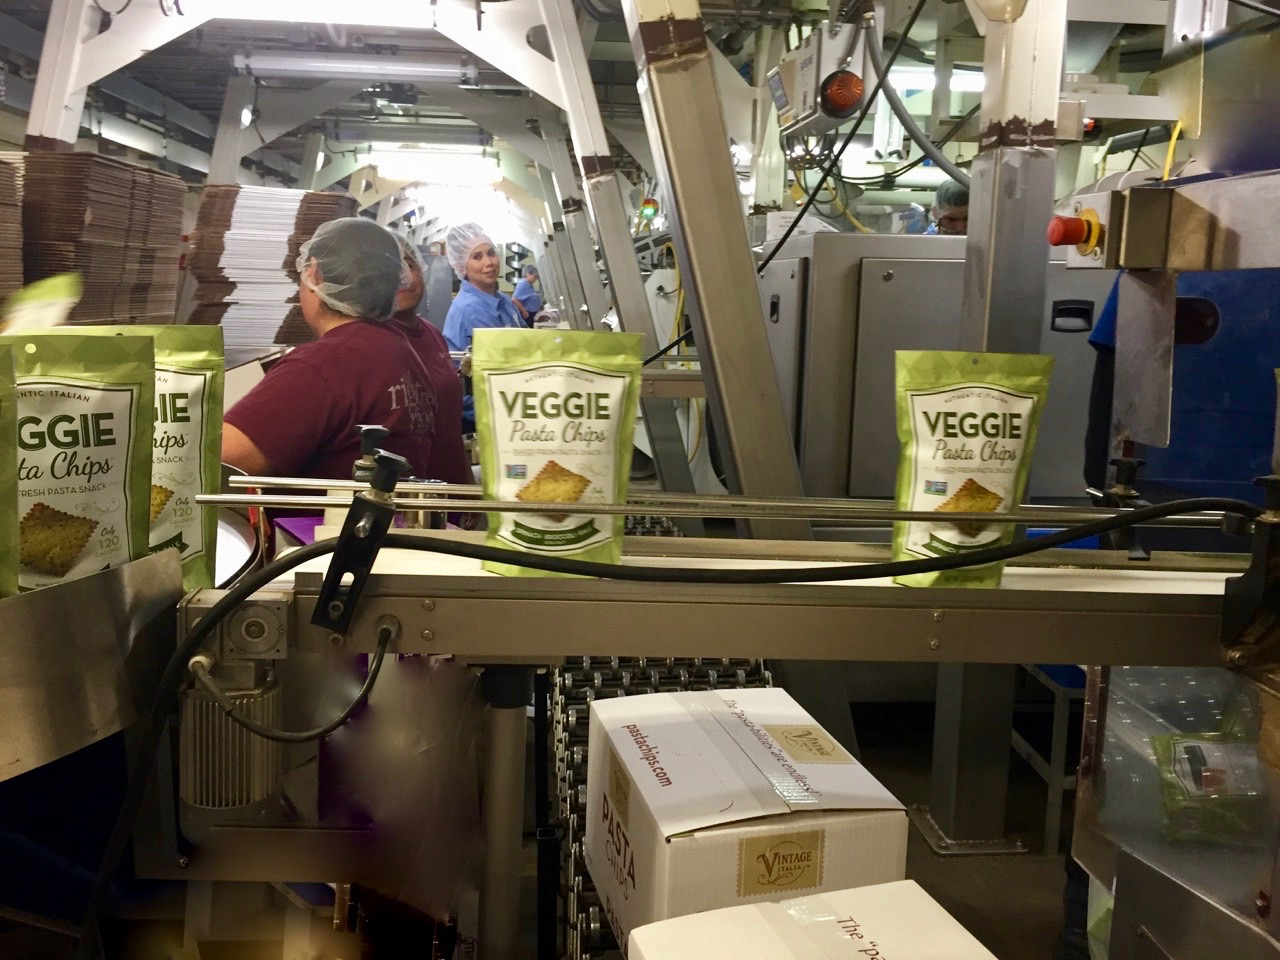 Vintage Italia Veggie Pasta Chips about to be shipped to retailers